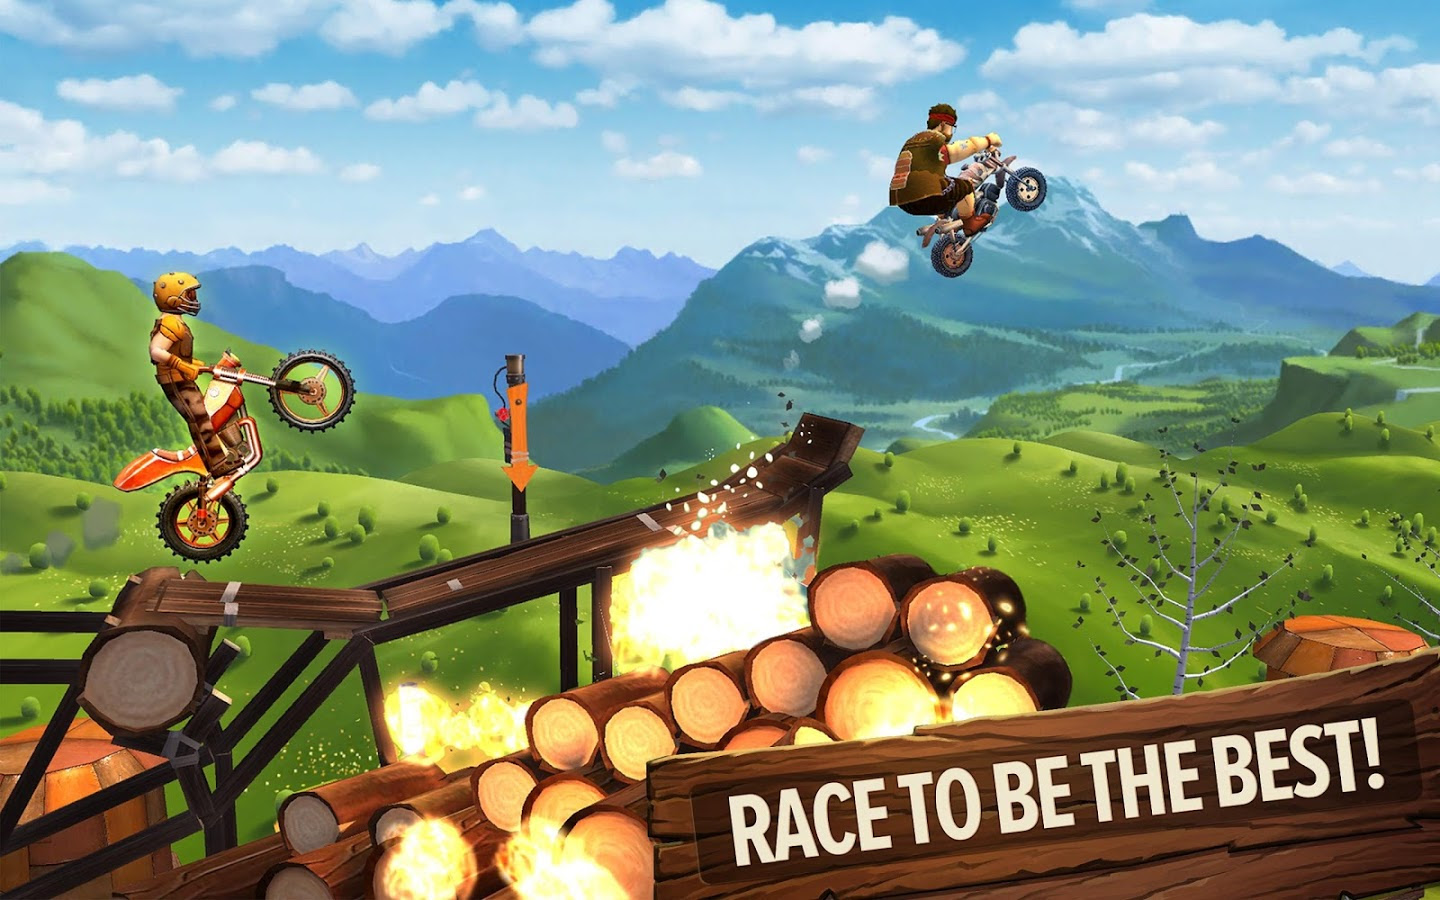 download Trials Frontiers 3 mod apk unlimited coins and gems free, mod apk download trials frontier 3, trials frontiers 3 apk download, mod apk download trials frontier 3,bike race trial frontier 3 mod apk unlimited coins download